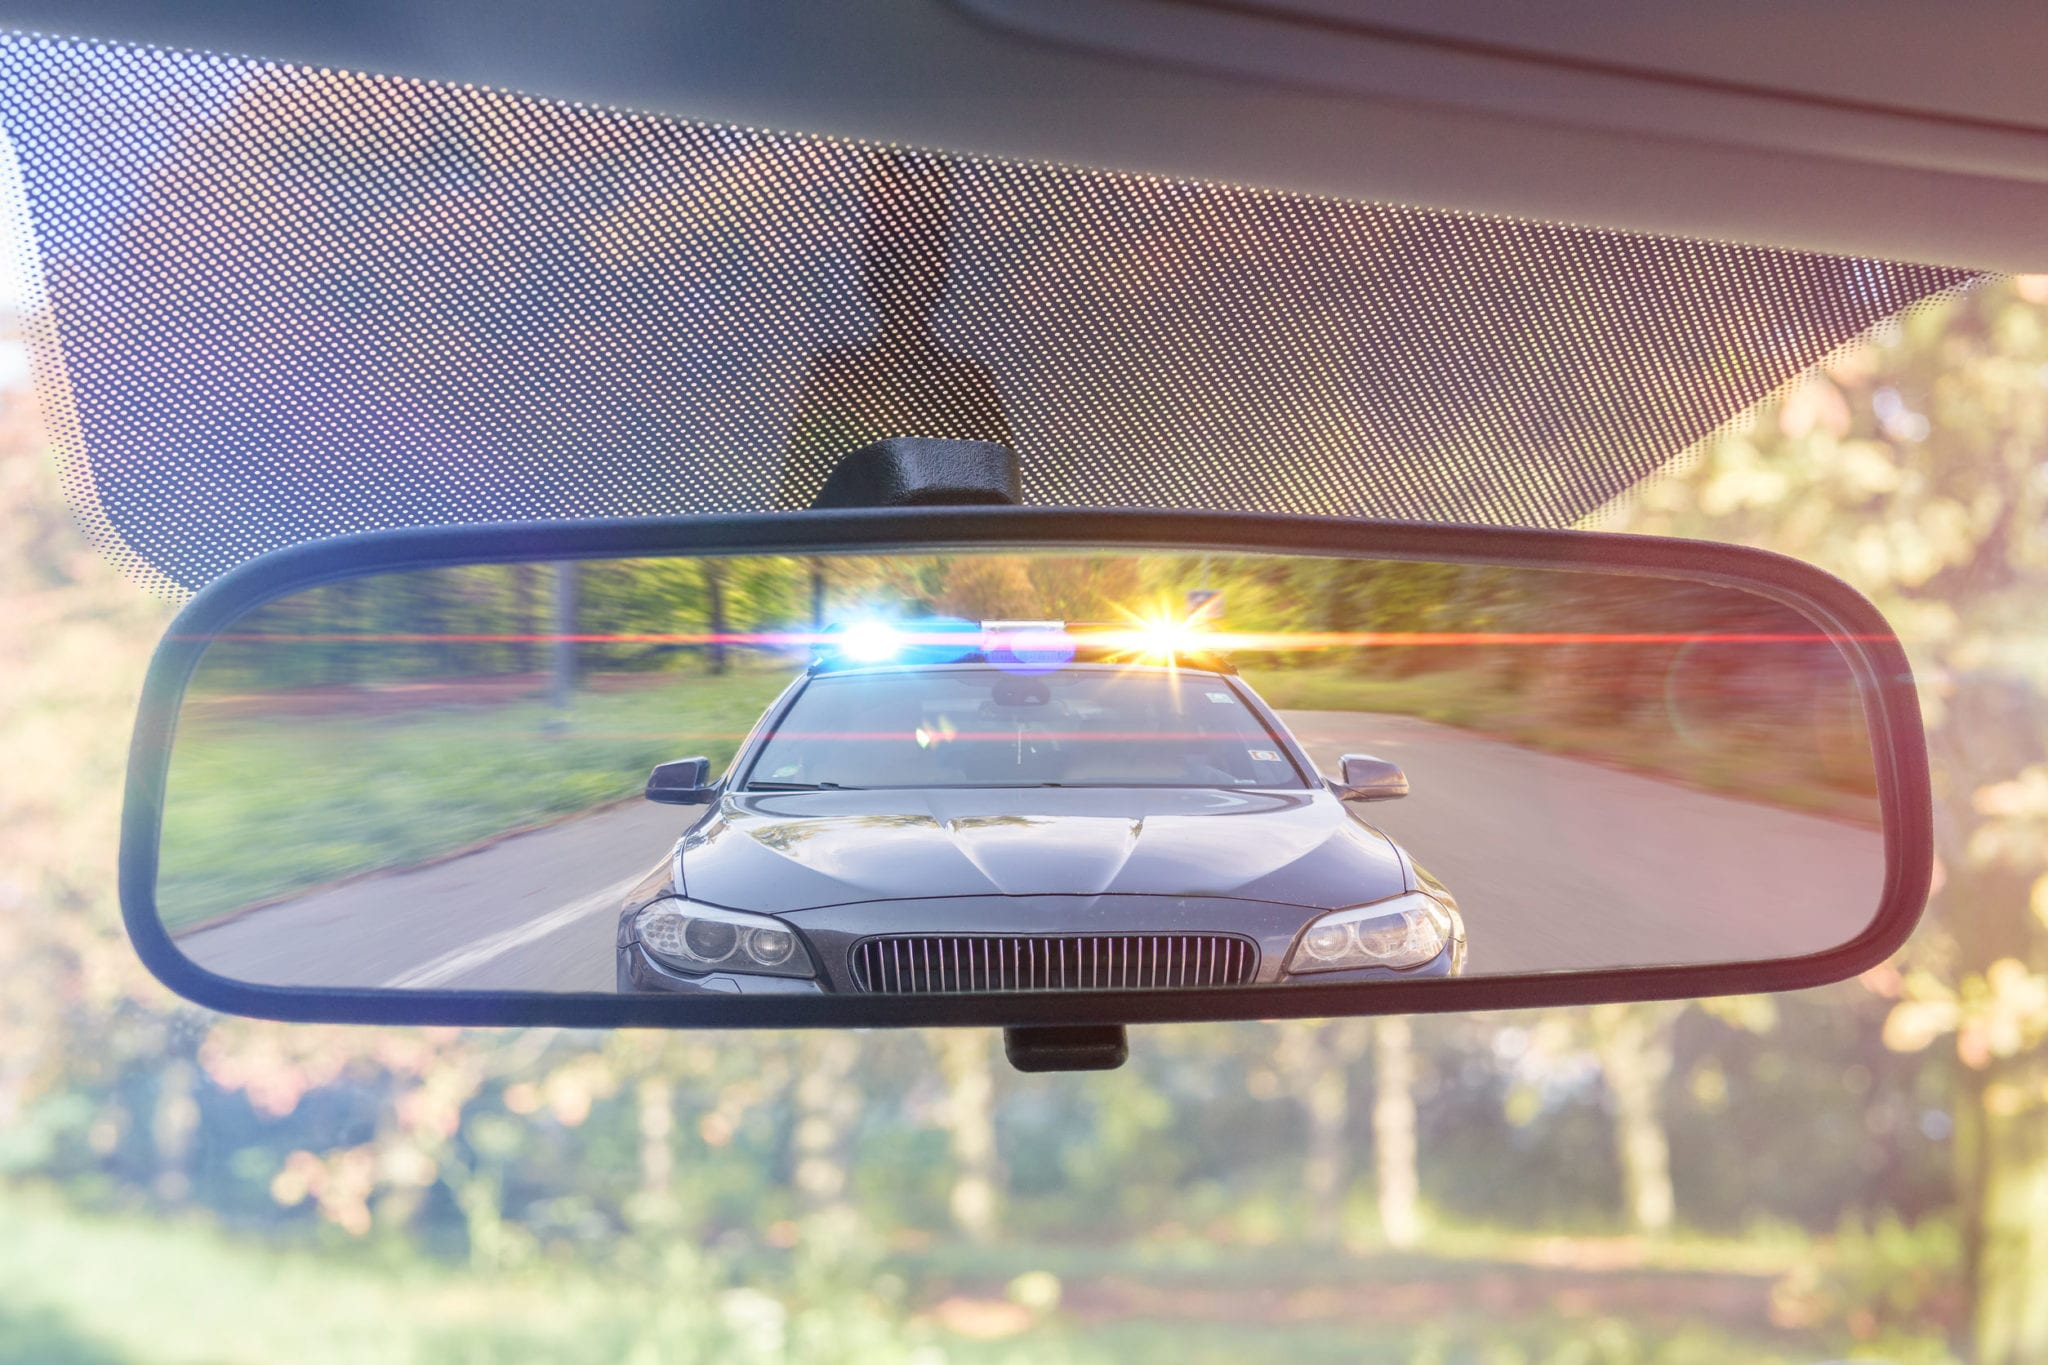 Pulled Over in TX? Know Your Rights To Prevent a DWI Arrest